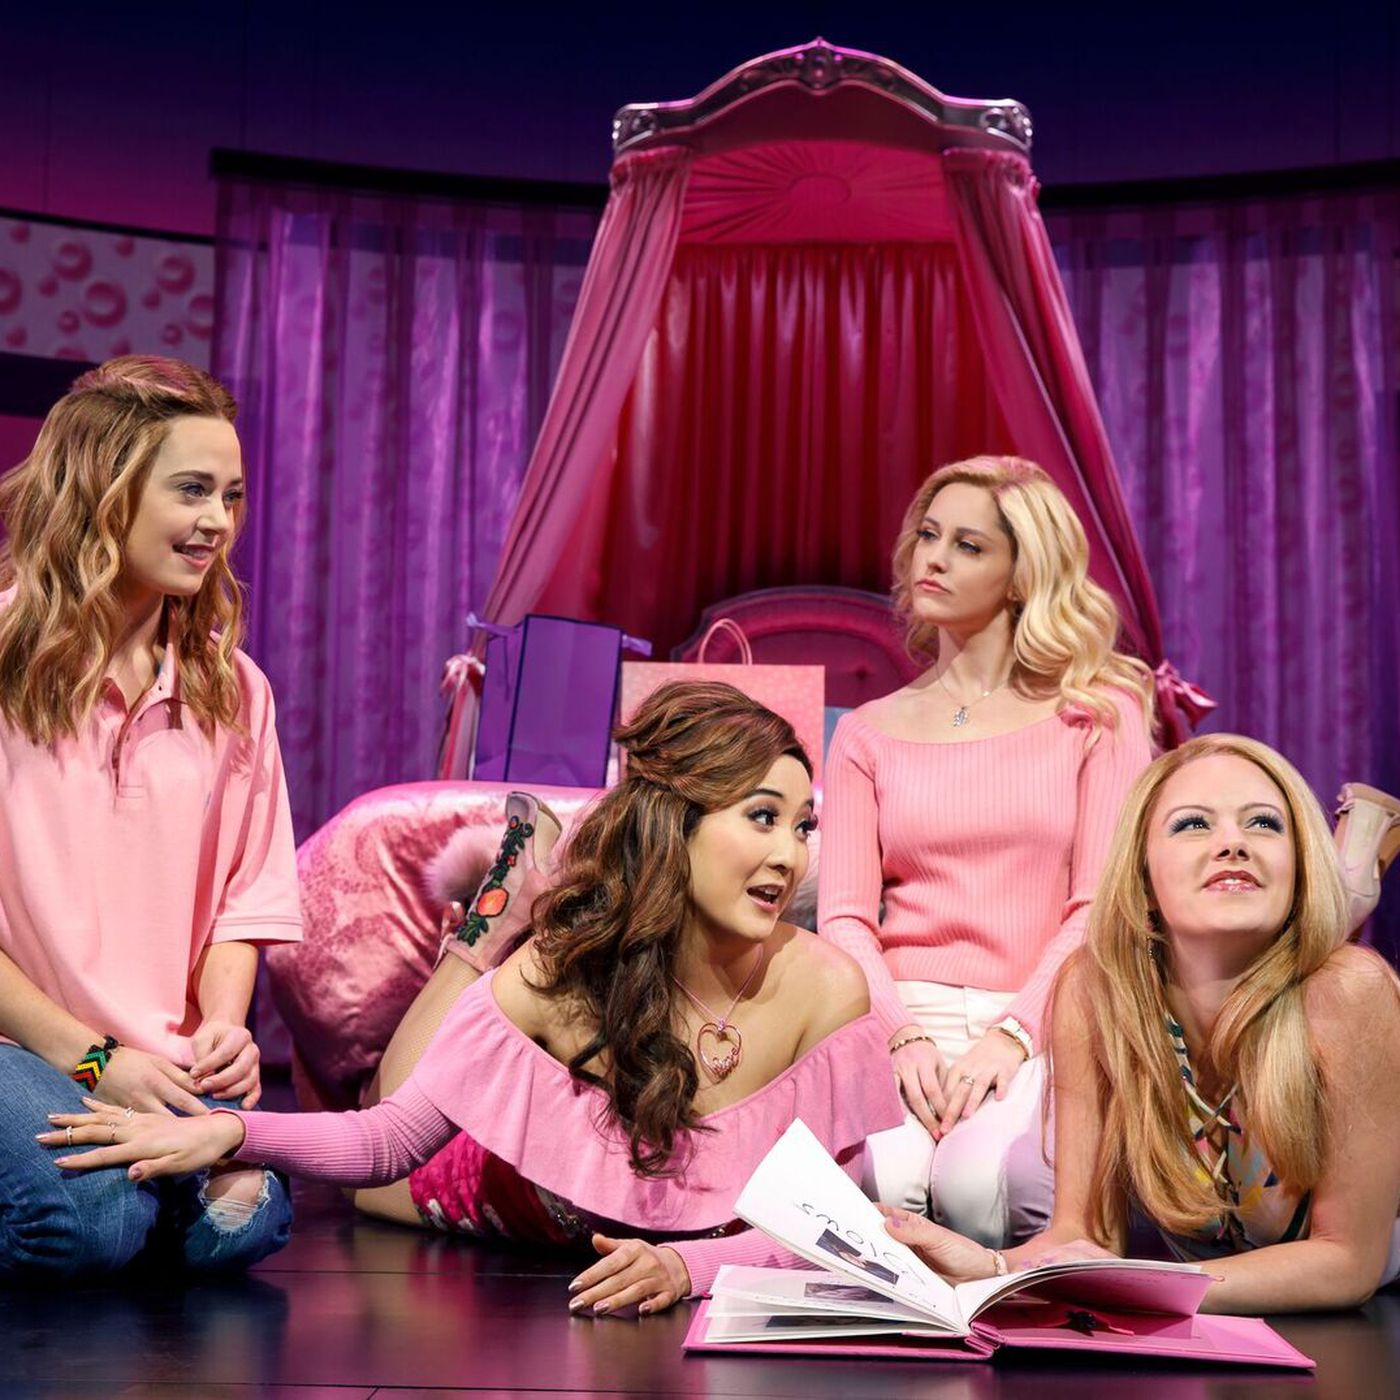 Tina Fey S Mean Girls Musical On Broadway What It Does Right And Wrong Vox Now i will be doing an ask gretchen hour, send in all your questions and i will answer the best! mean girls musical on broadway